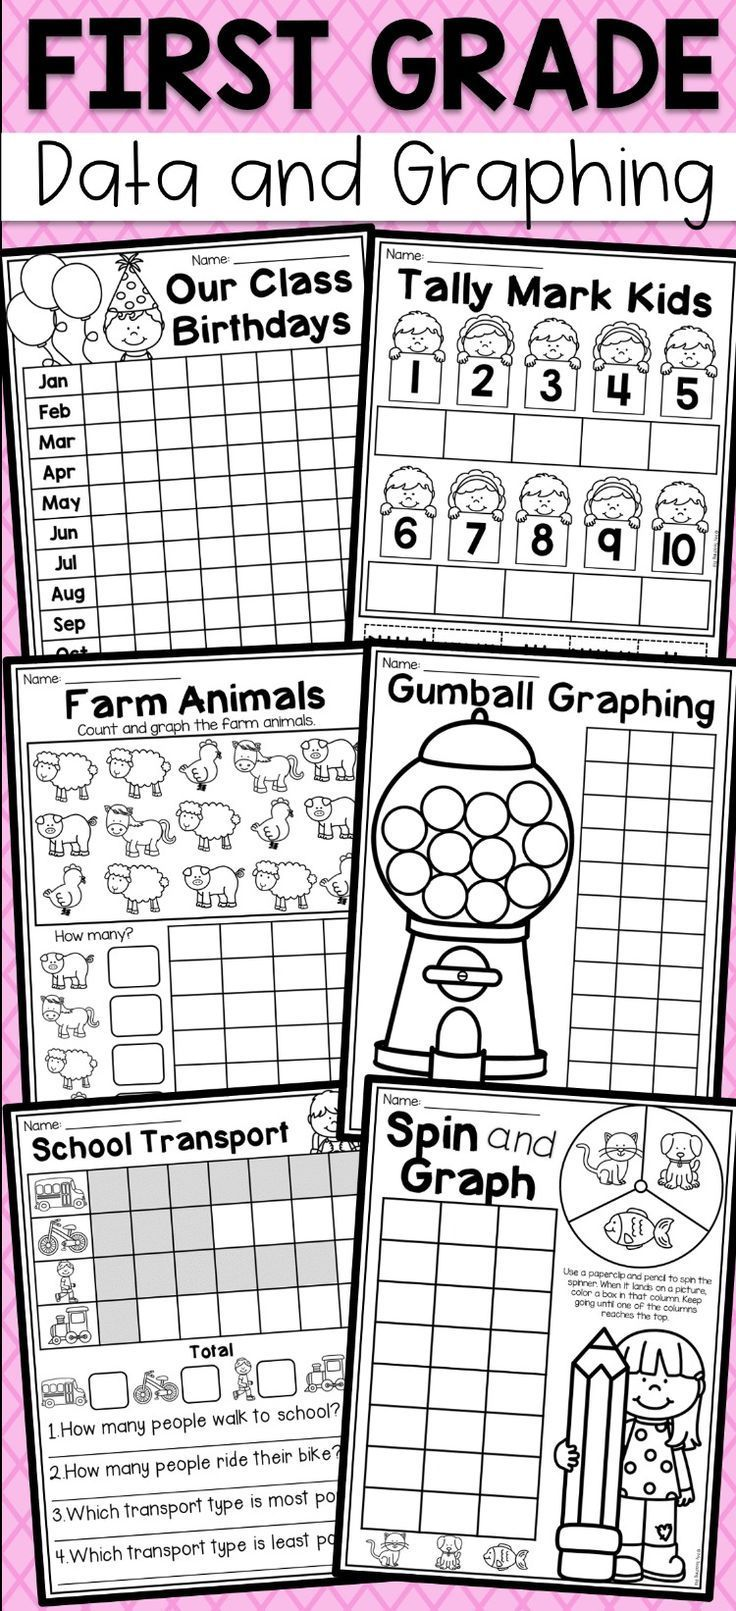 First Grade Data And Graphing Worksheets Distance Learning Modern Design Graphing First Grade Graphing Worksheets First Grade Worksheets